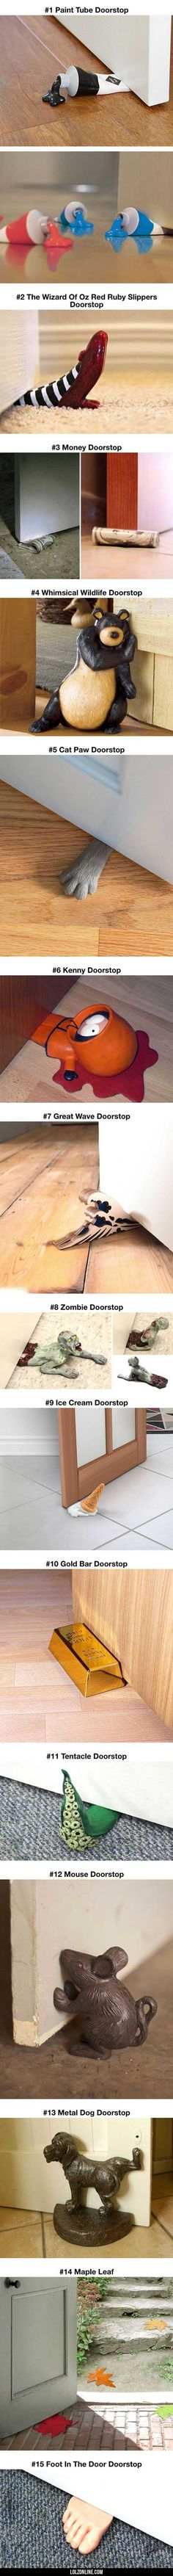 15 Fun Doorstops. Youve Never Wanted A Doorstop This Much!#funny #lol #lolzonline